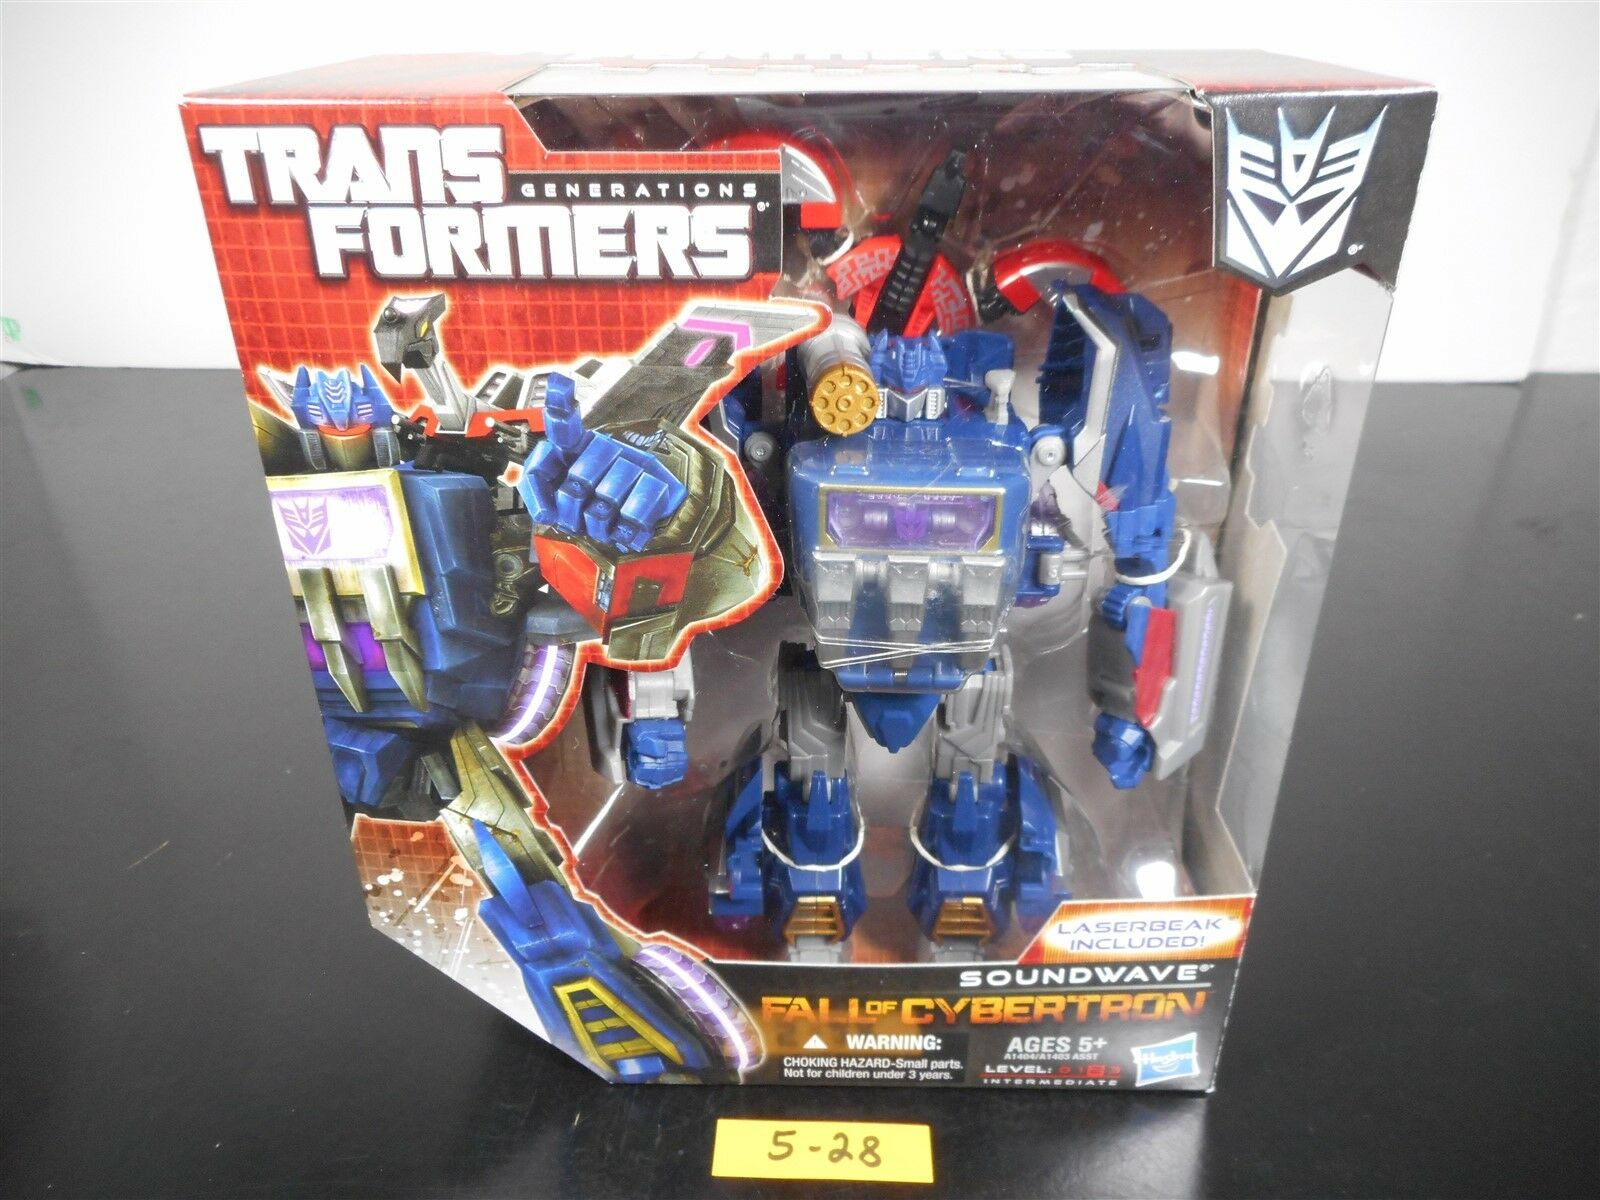 NEW SEALED  TRANSFORMERS GENERATIONS FALL OF CYBERTRON FOC SOUNDWAVE FIGURE 5-28